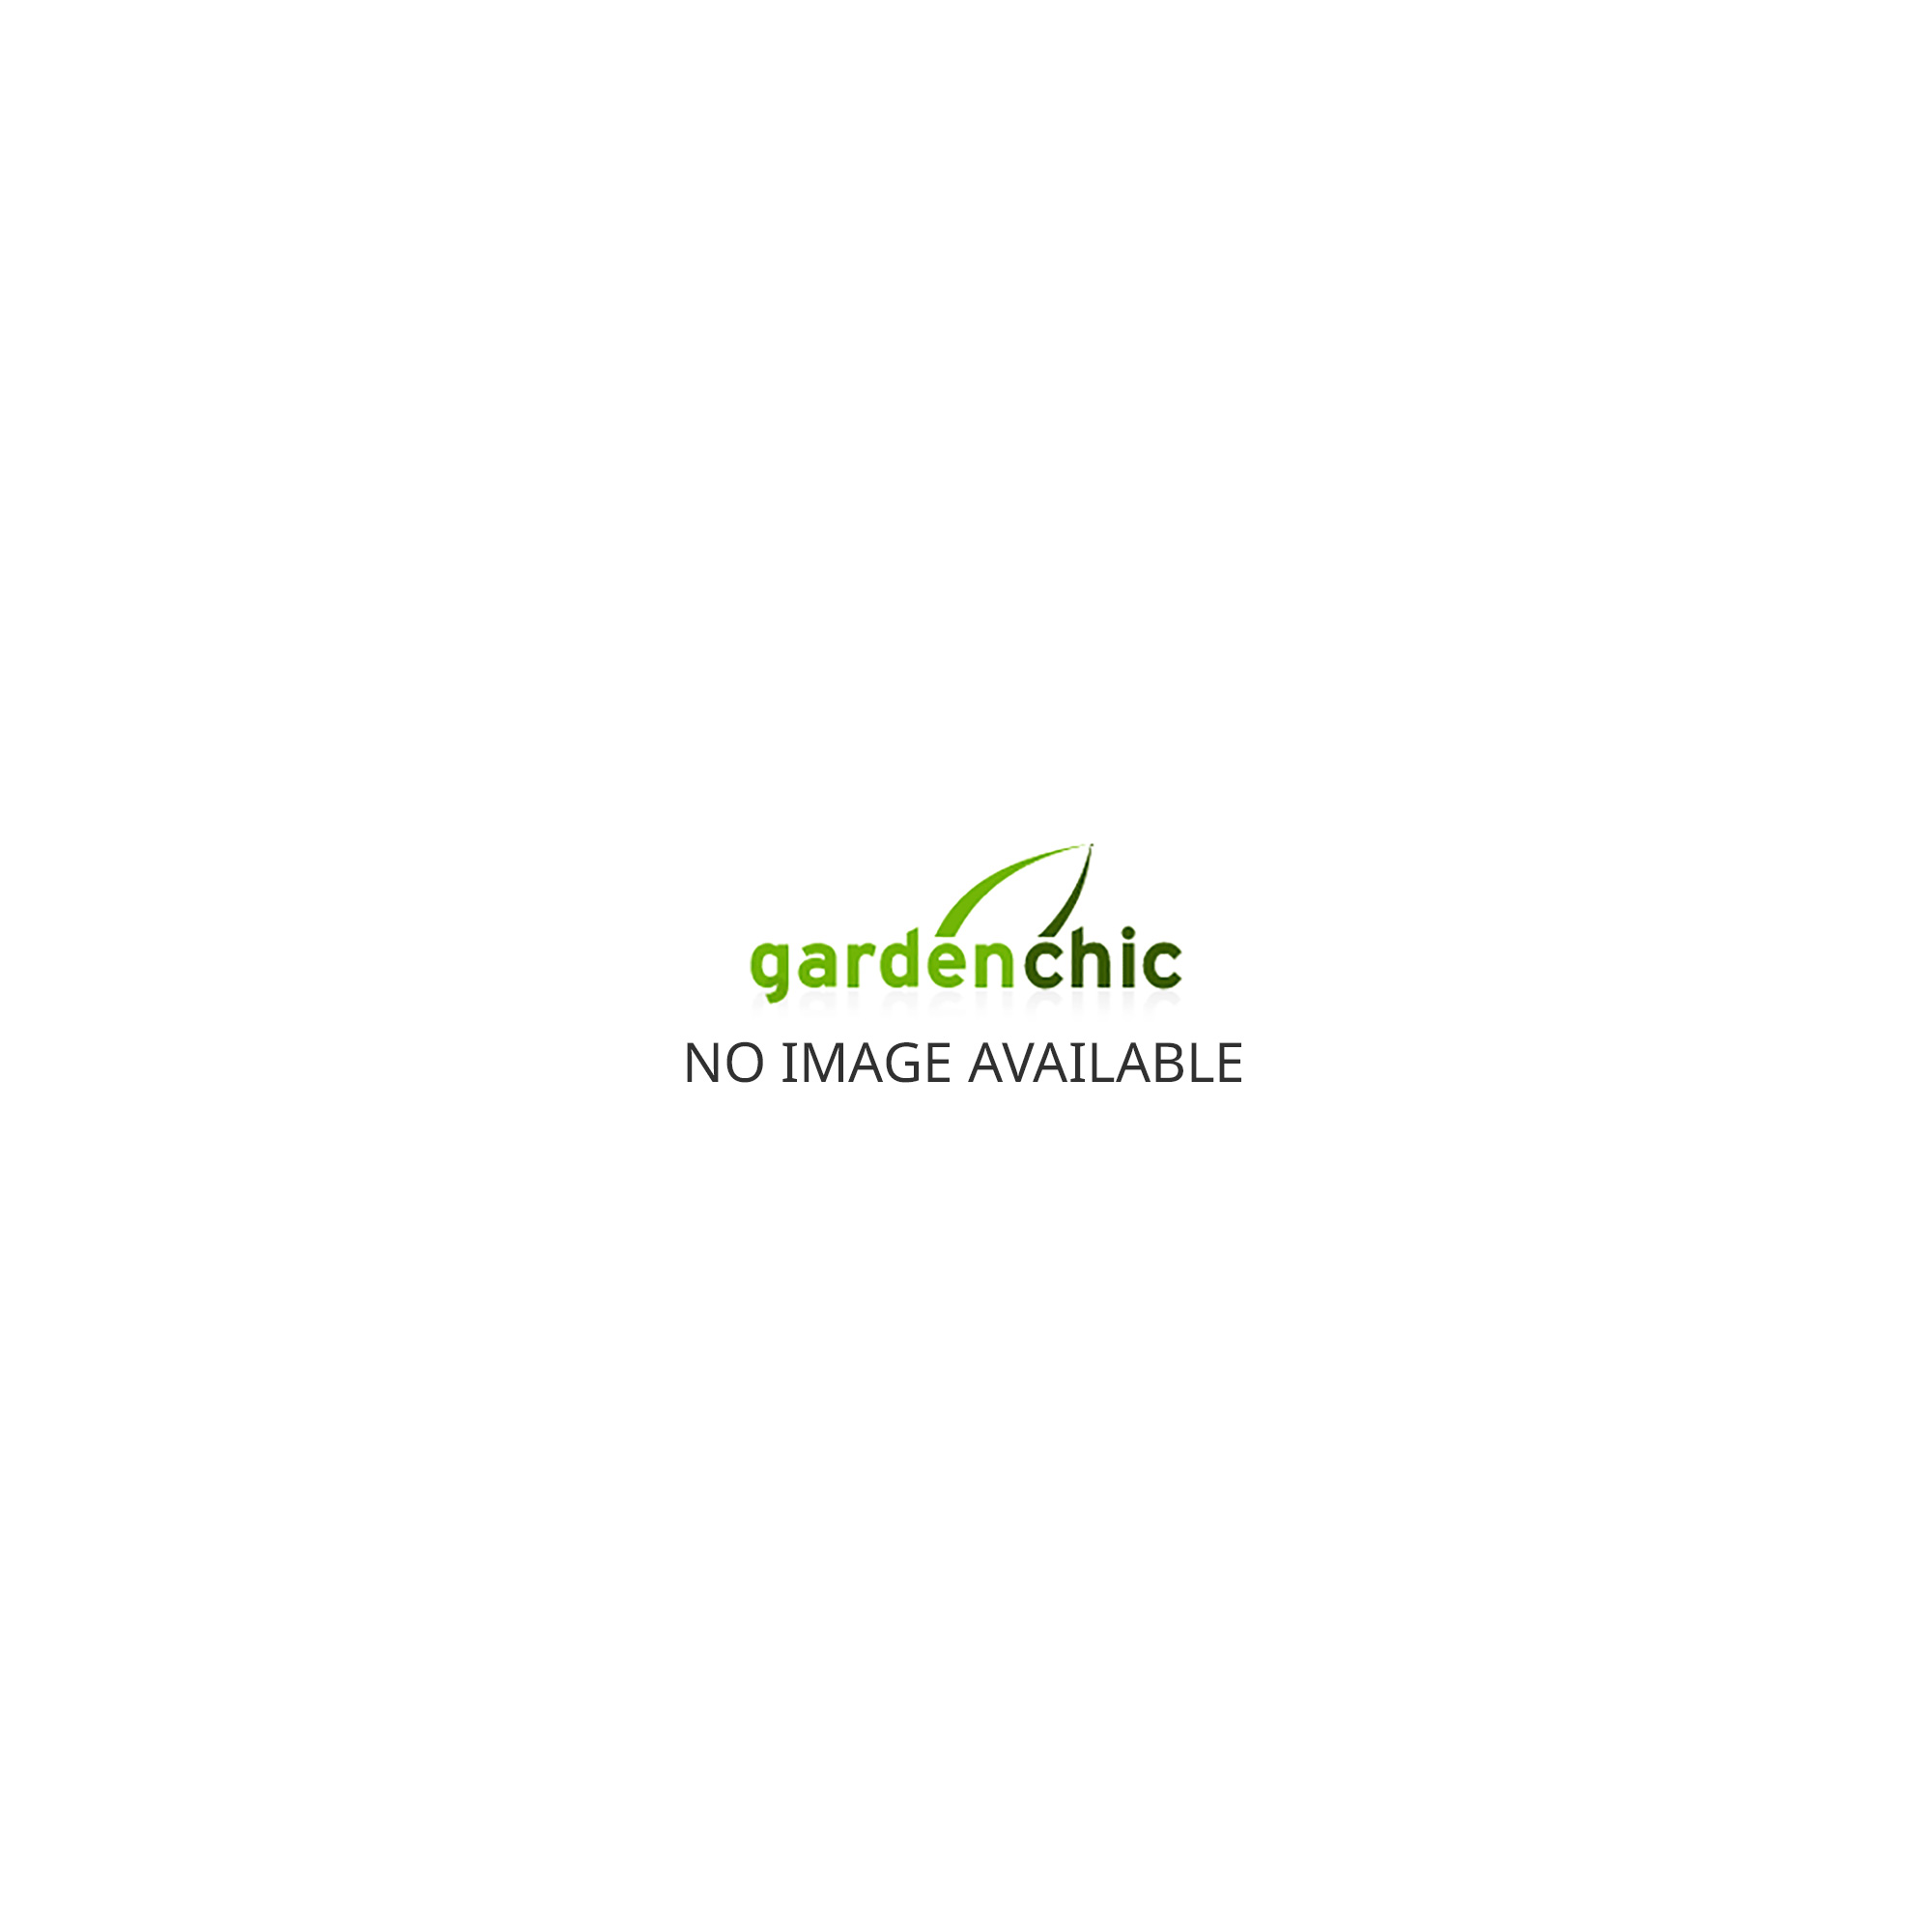 Vitavia Apollo 5000 Greenhouse - Green FREE Staging until APRIL 2018